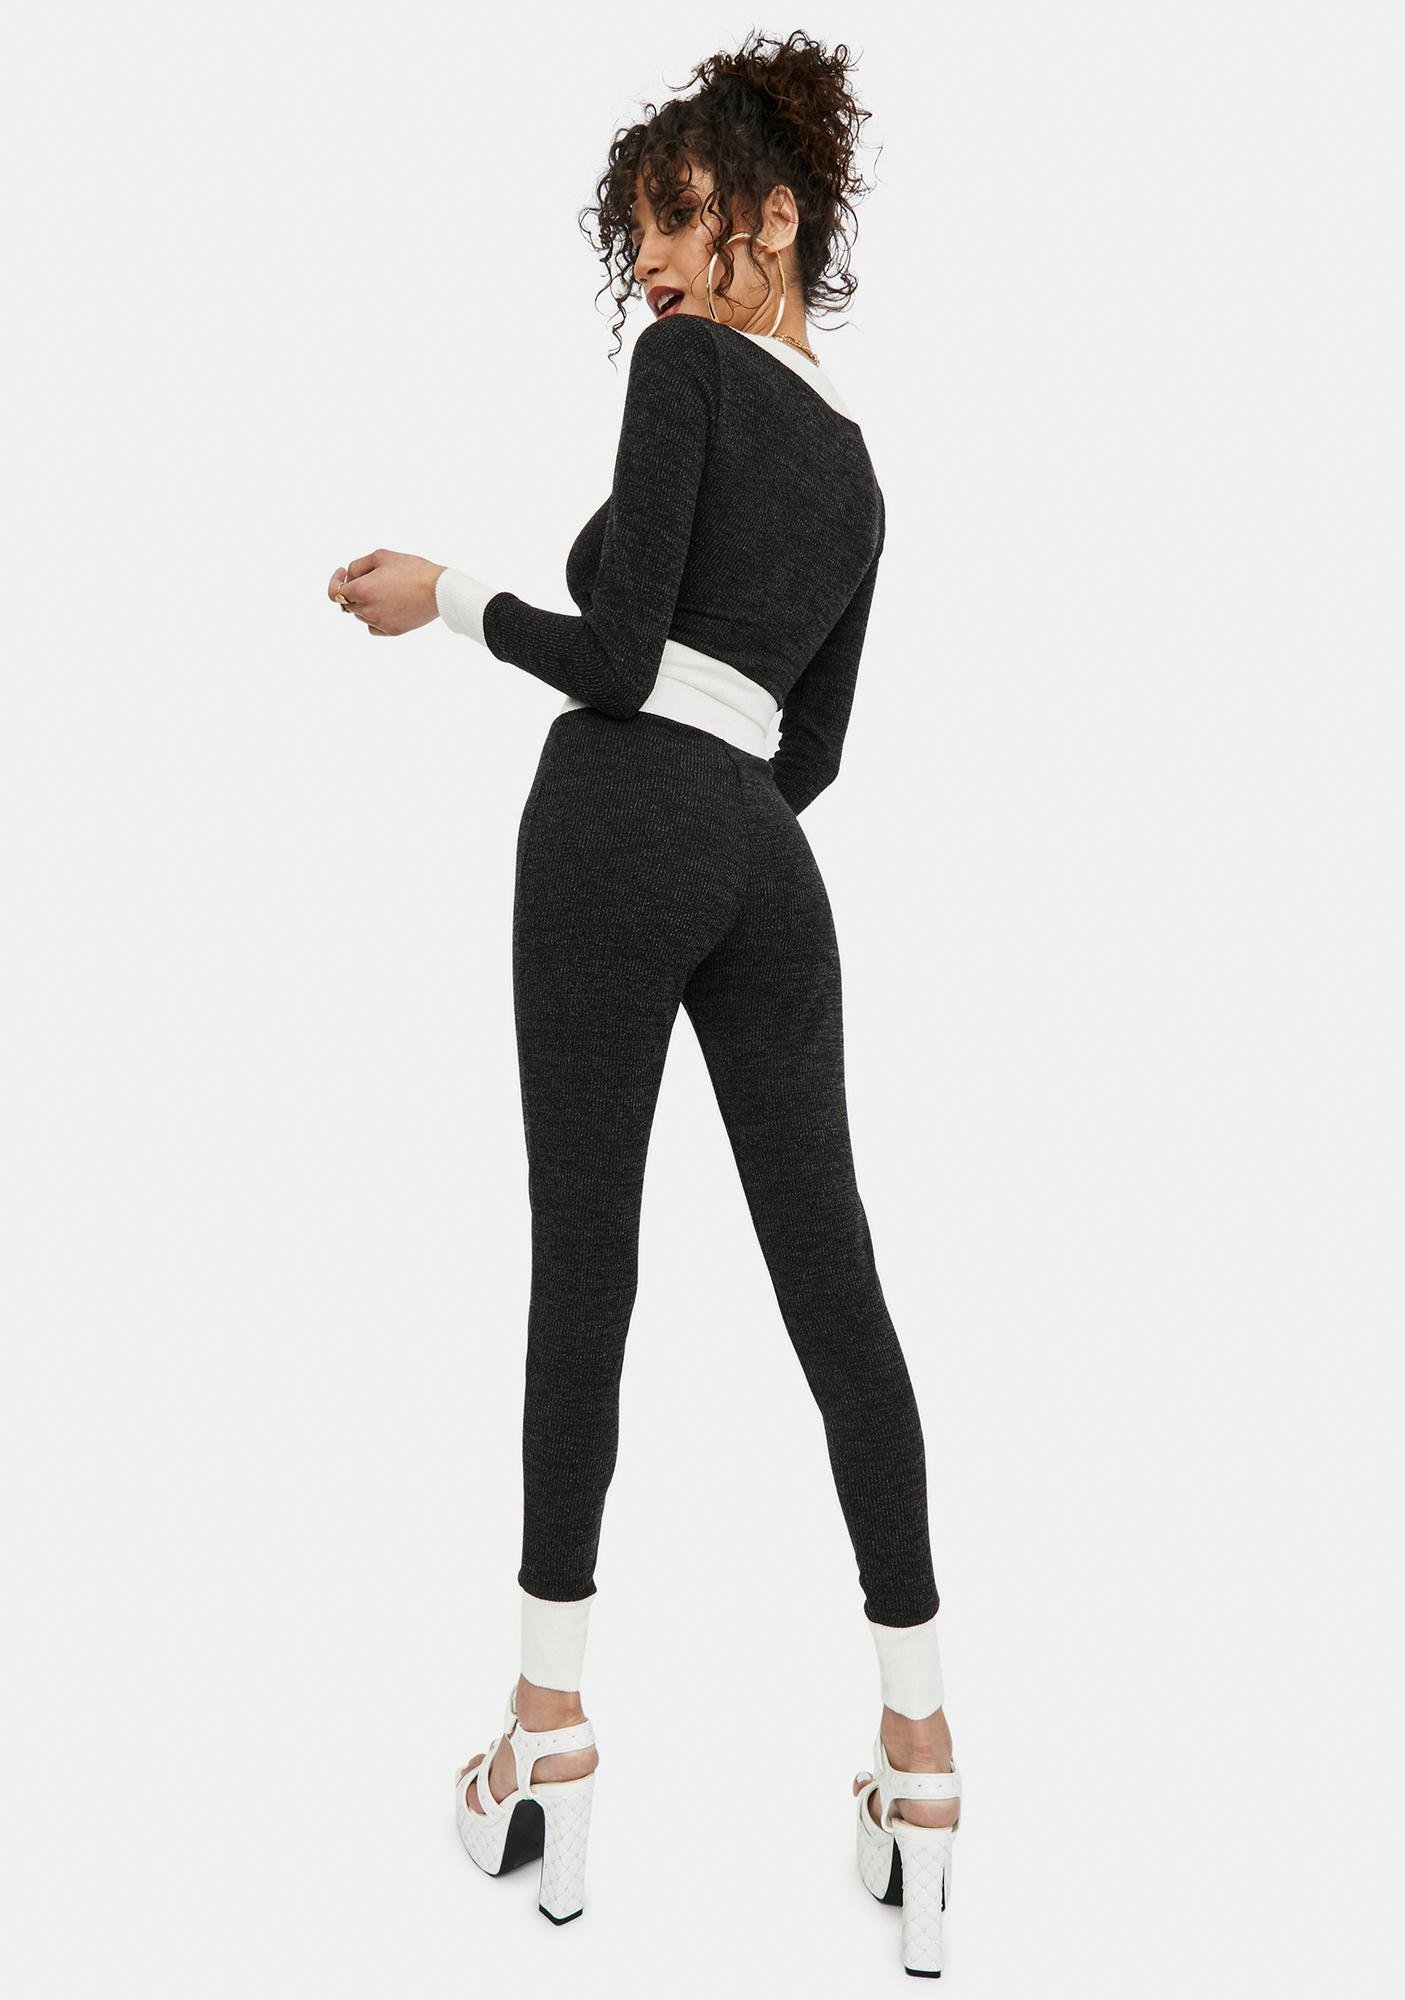 Midnight Committed To Passion Leggings Set